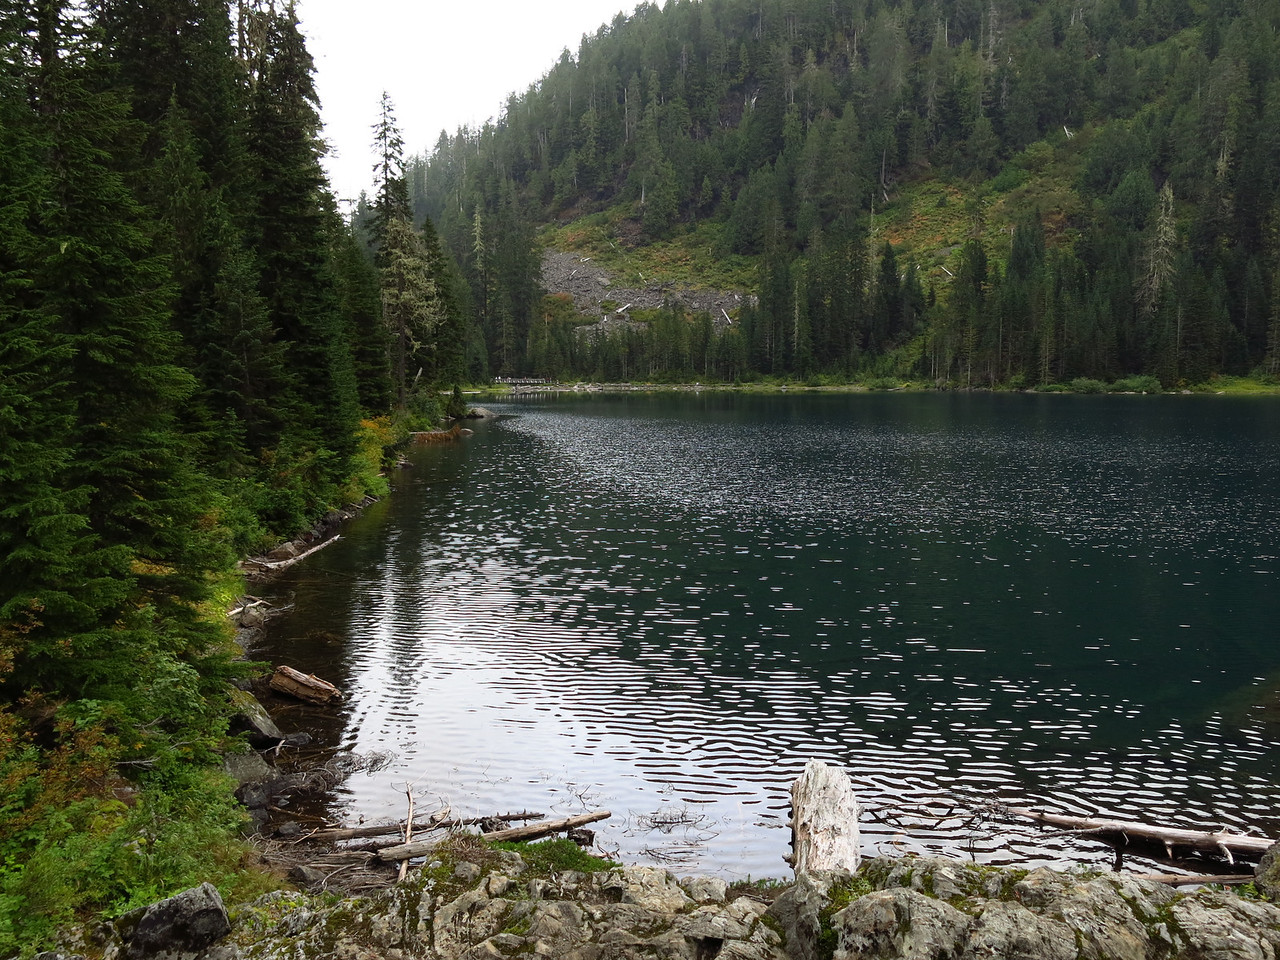 The west shore of the lake is on the left side of the picture.